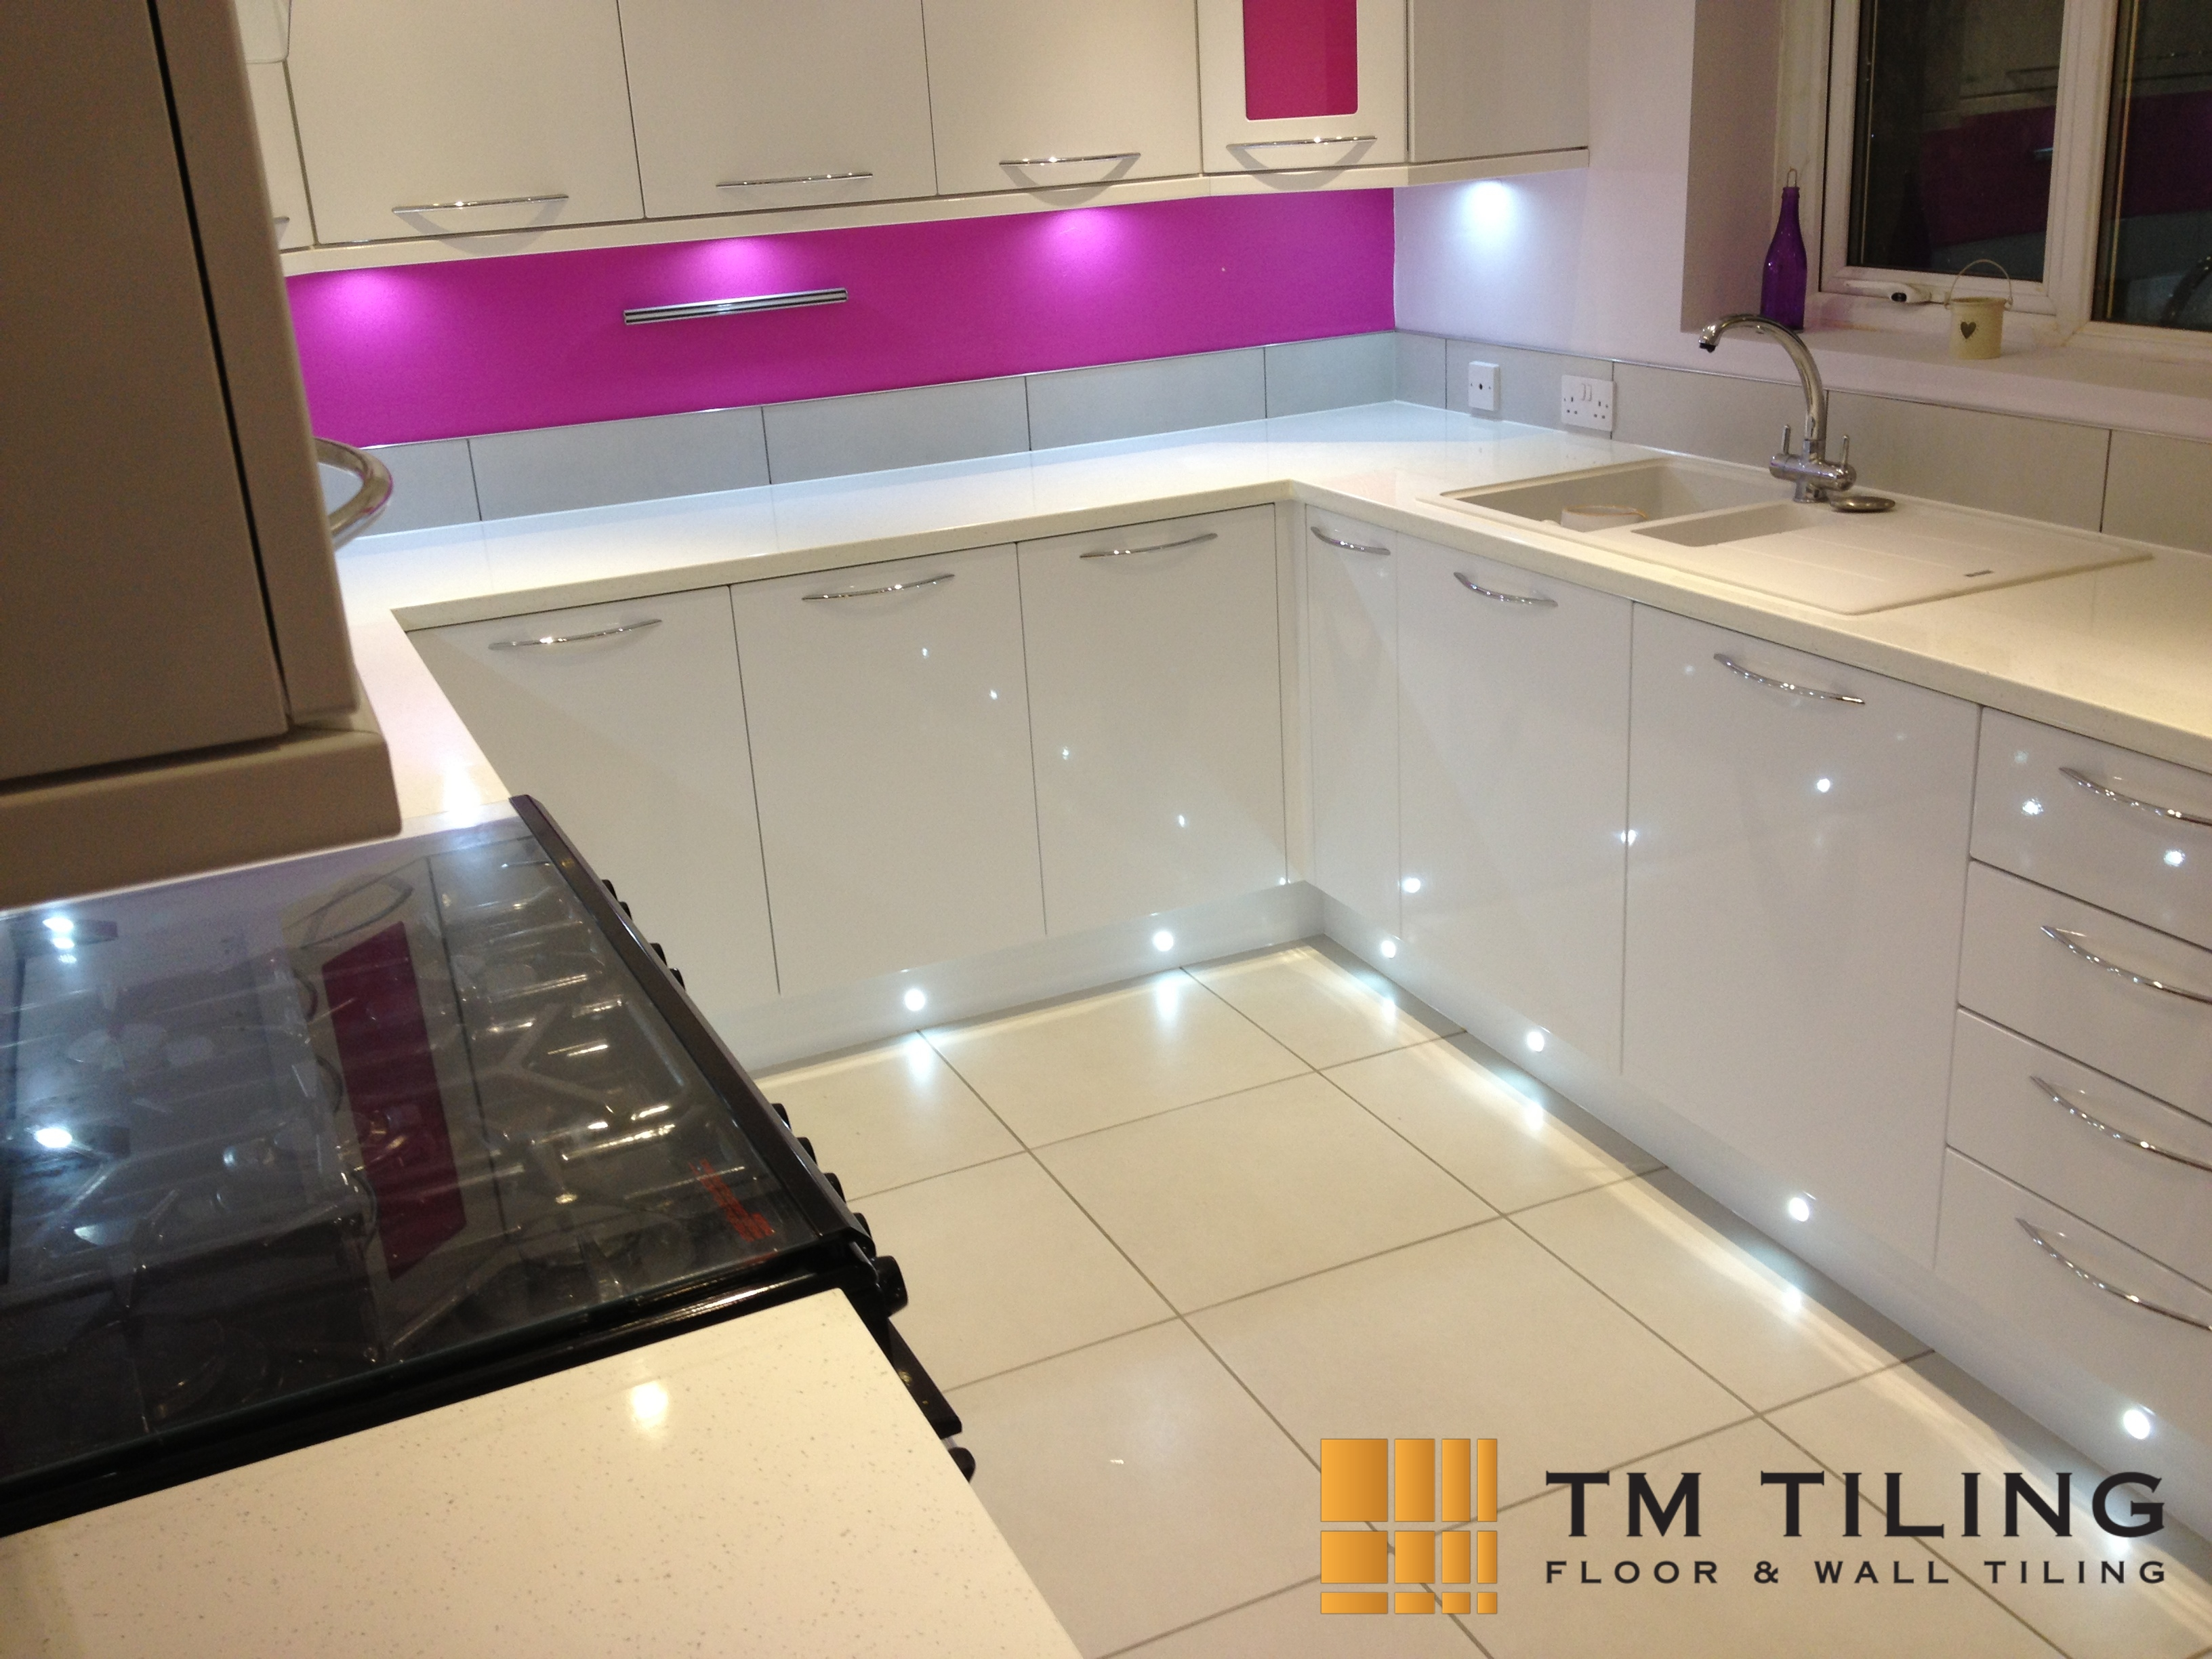 kitchen-tiles-tile-installation-renovation-tm-tiling-singapore_wm